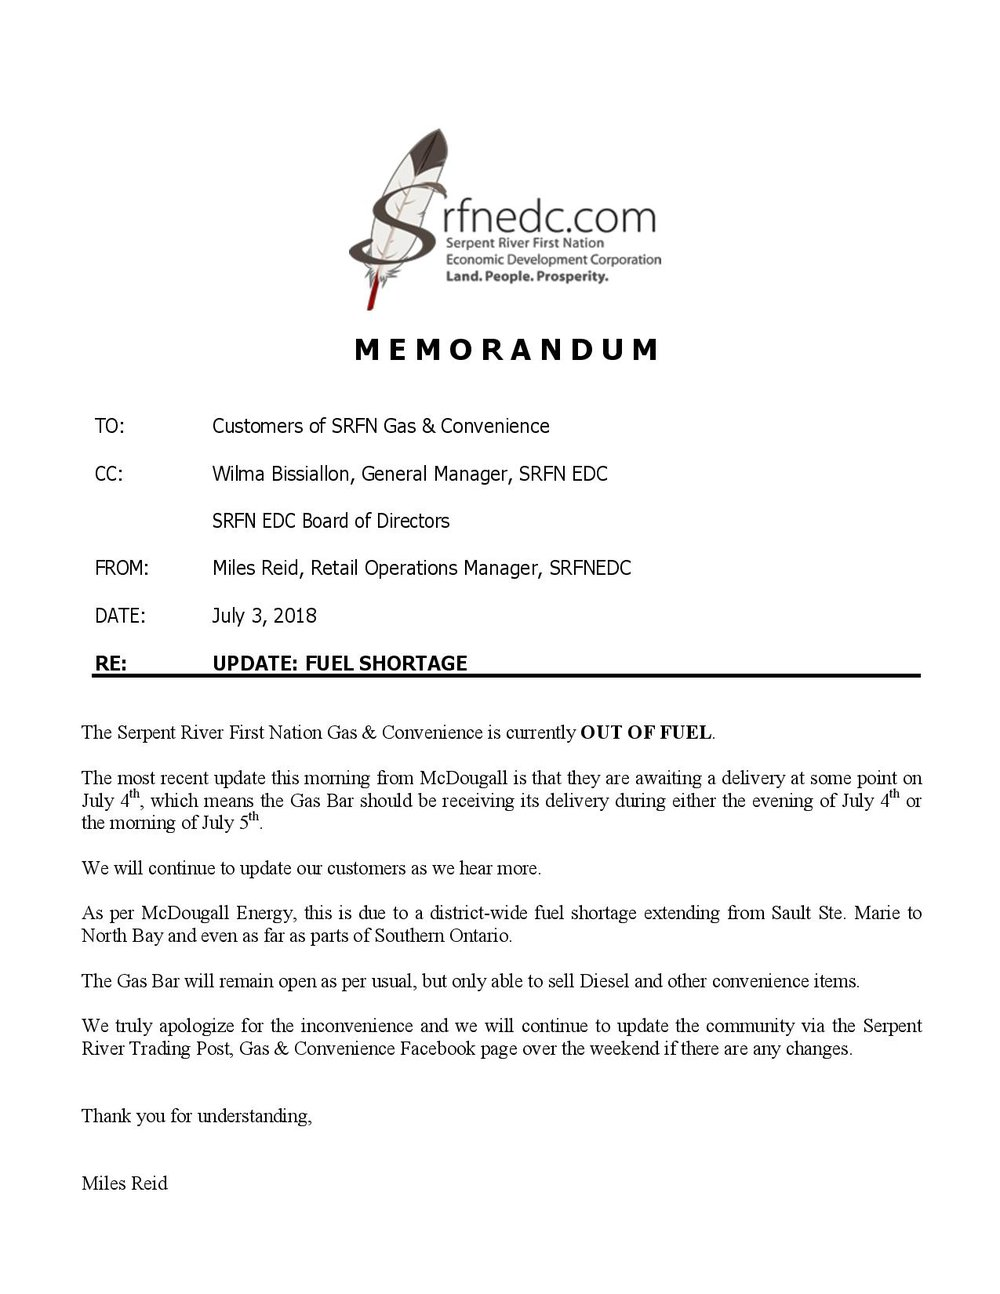 Memo - Fuel Shortage Update July 3-page-001.jpg